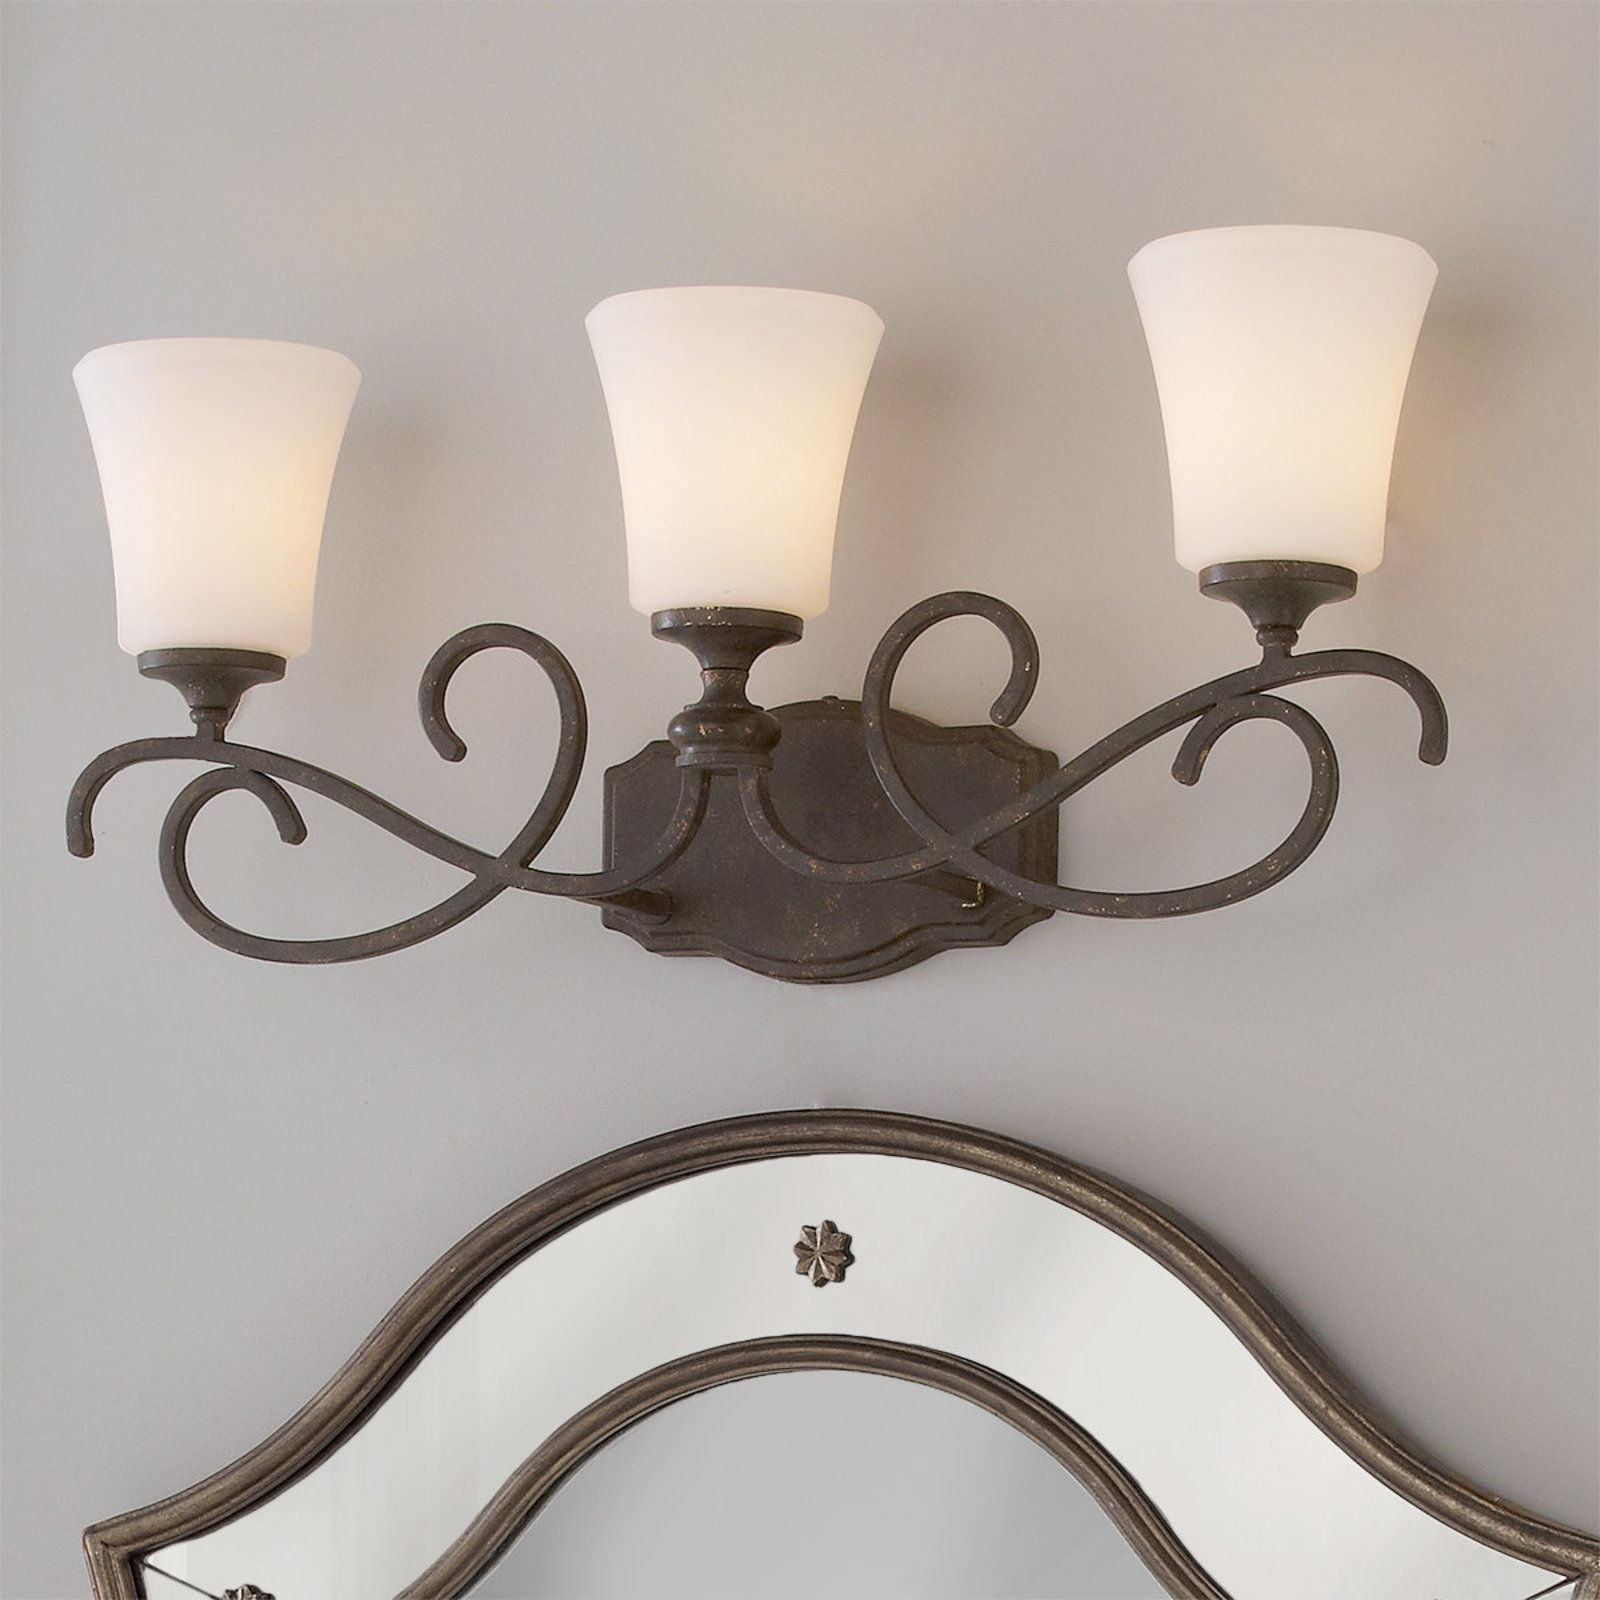 competitive price 2636e 92004 Weathered French Country Bath Light - 3 Light | Master bath ...